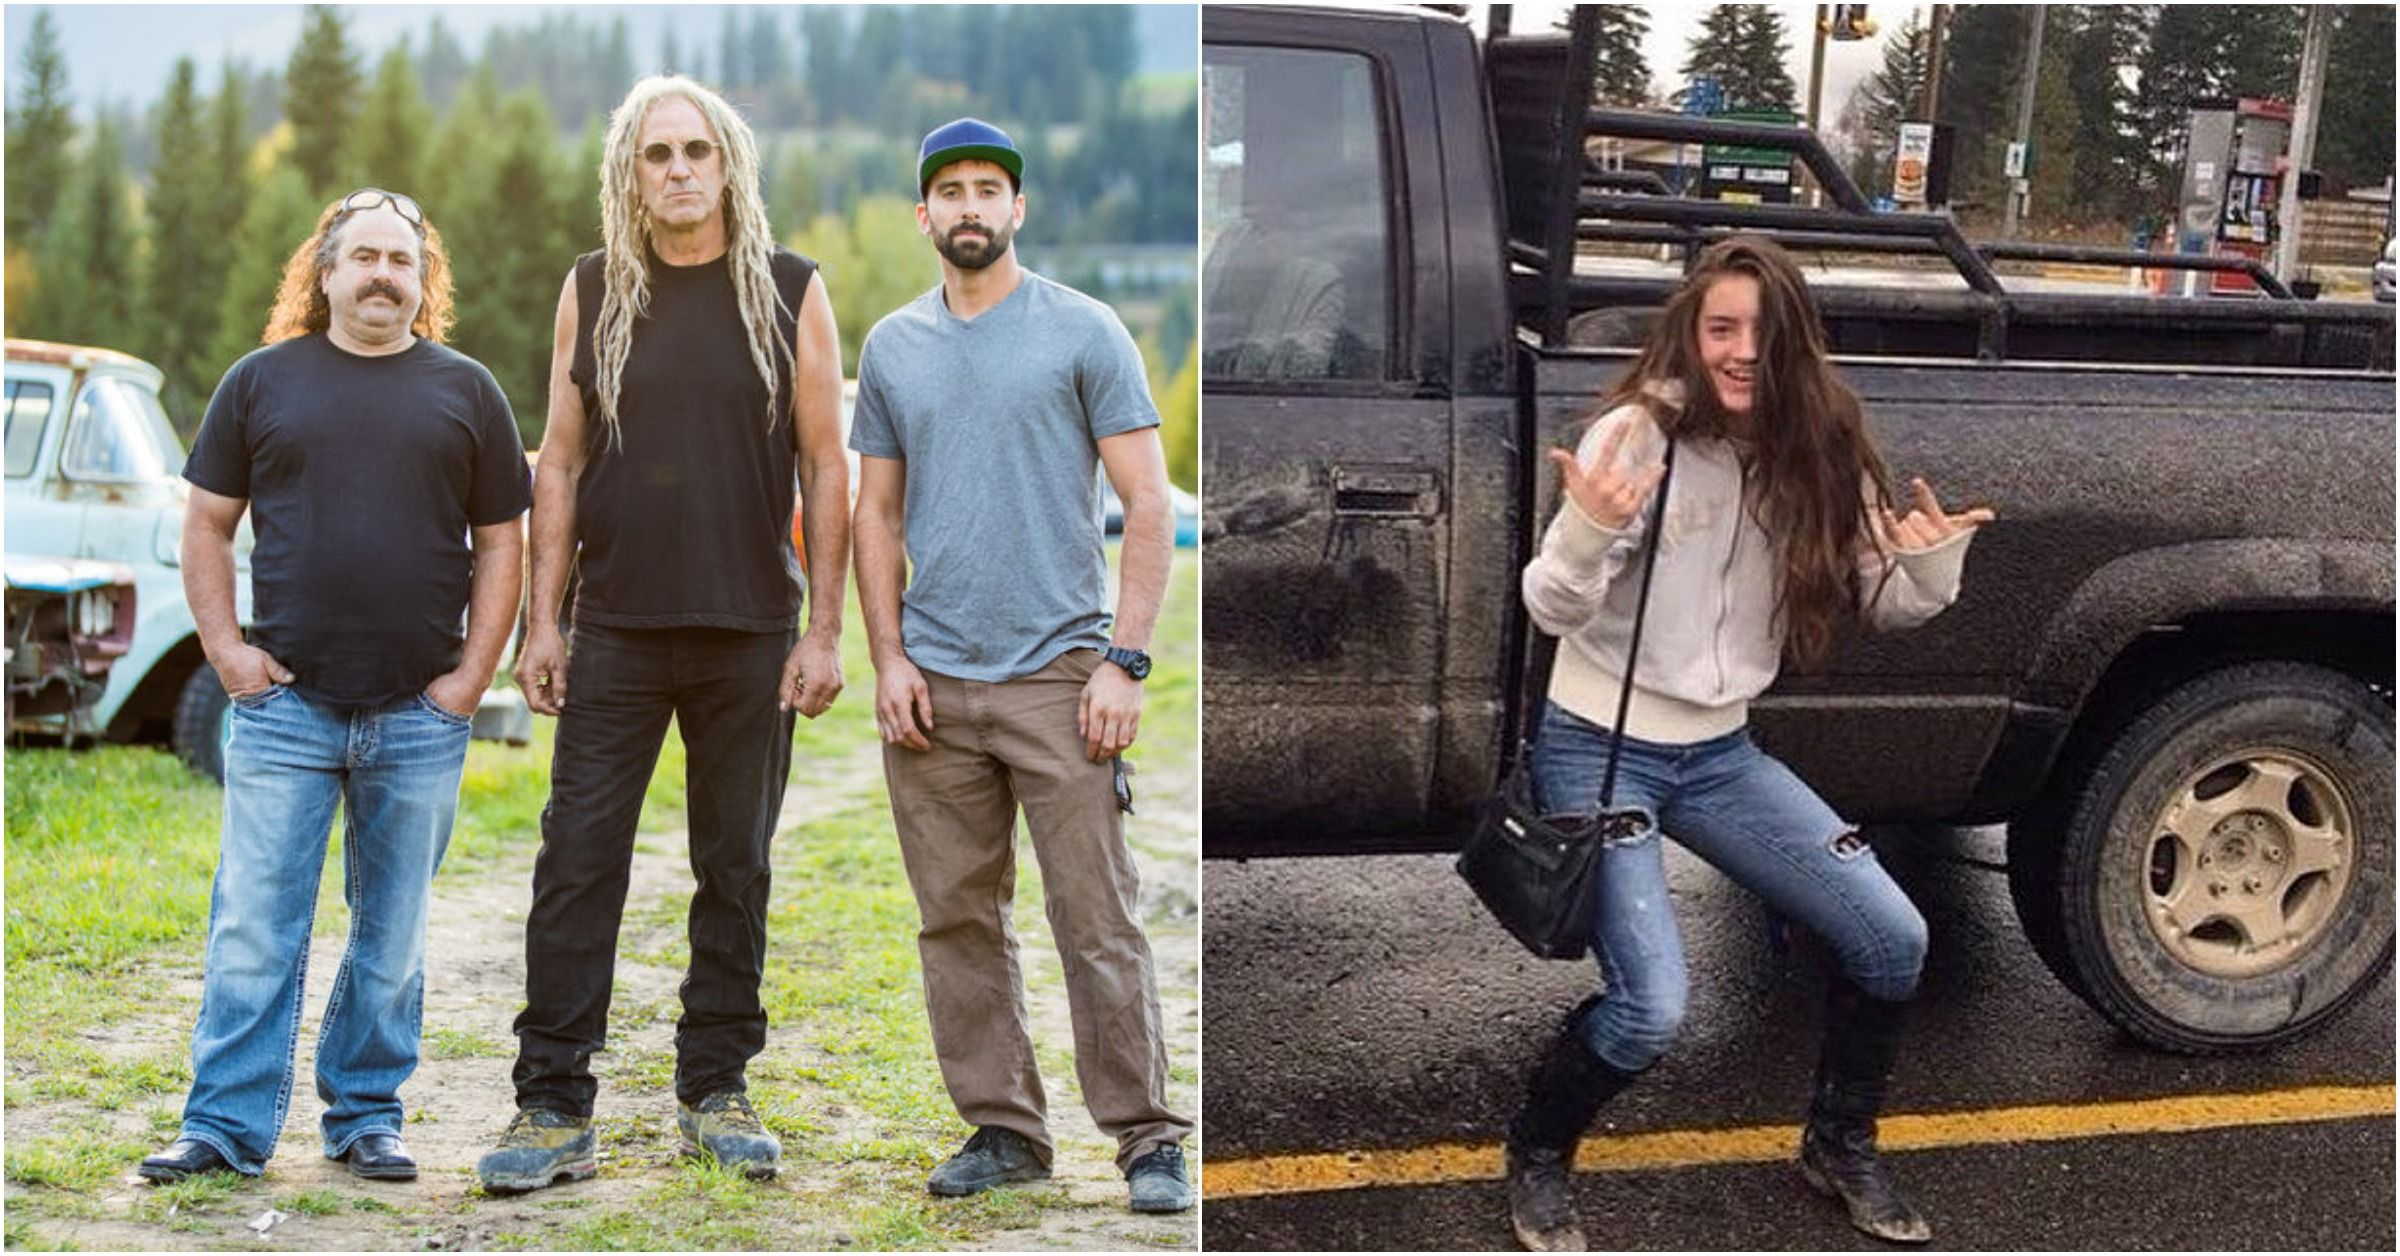 15 Little-Known Facts About The Rust Valley Restorers Crew